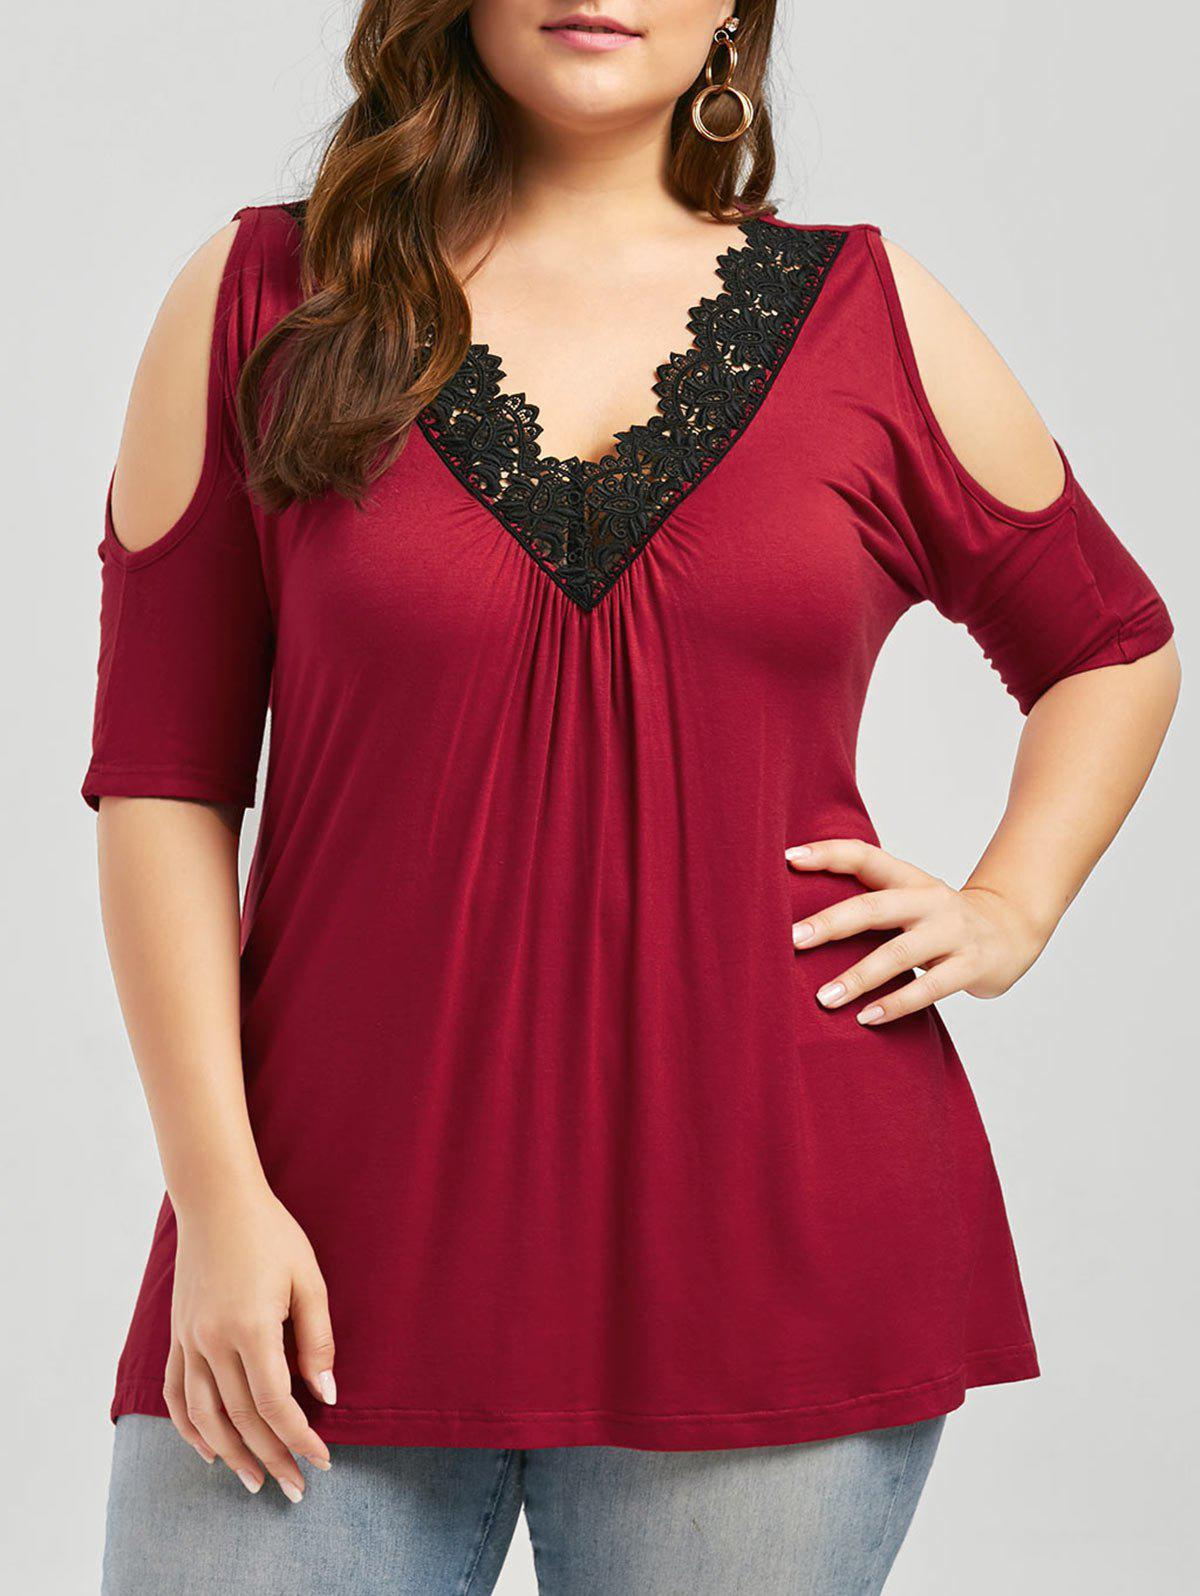 Plus Size Lace Trim Cold Shoulder V Neck Flowy TopWOMEN<br><br>Size: 5XL; Color: RED; Material: Cotton,Cotton Blends,Polyester; Shirt Length: Regular; Sleeve Length: Short; Collar: V-Neck; Style: Fashion; Season: Spring,Summer; Embellishment: Hollow Out; Pattern Type: Solid; Weight: 0.3400kg; Package Contents: 1 x Top;